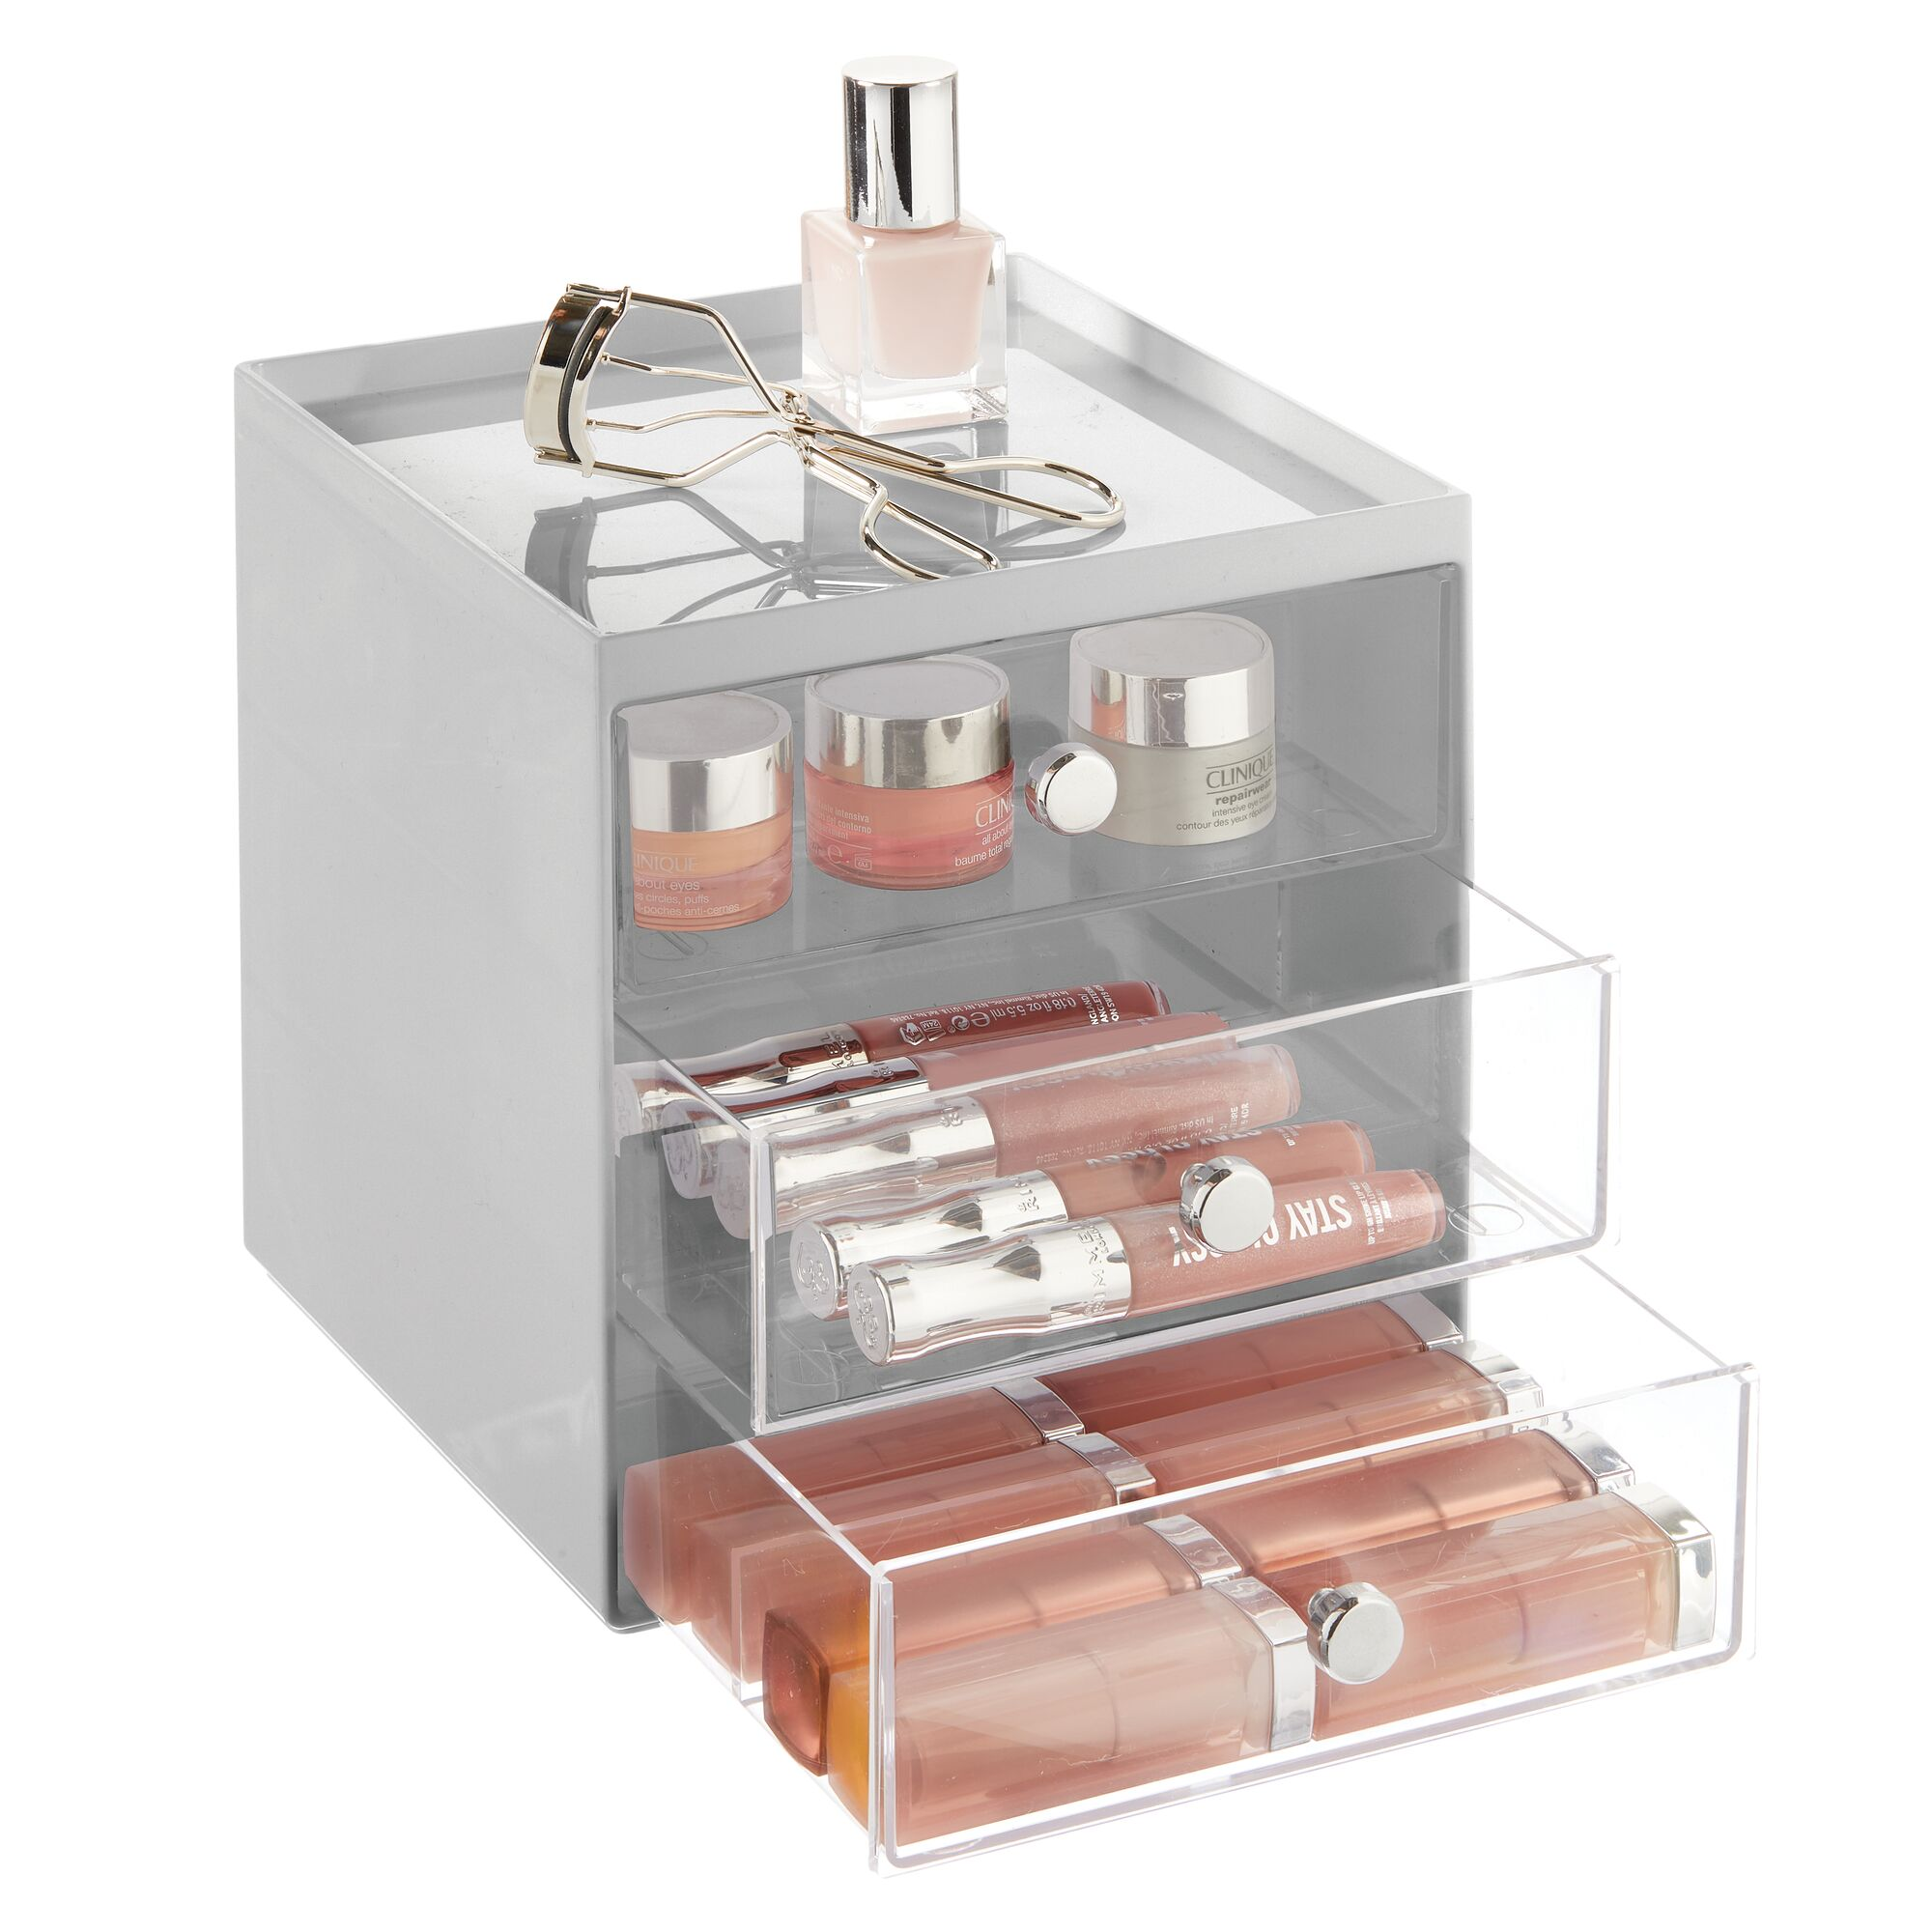 mDesign-Plastic-Makeup-Storage-Organizer-Cube-3-Drawers thumbnail 43